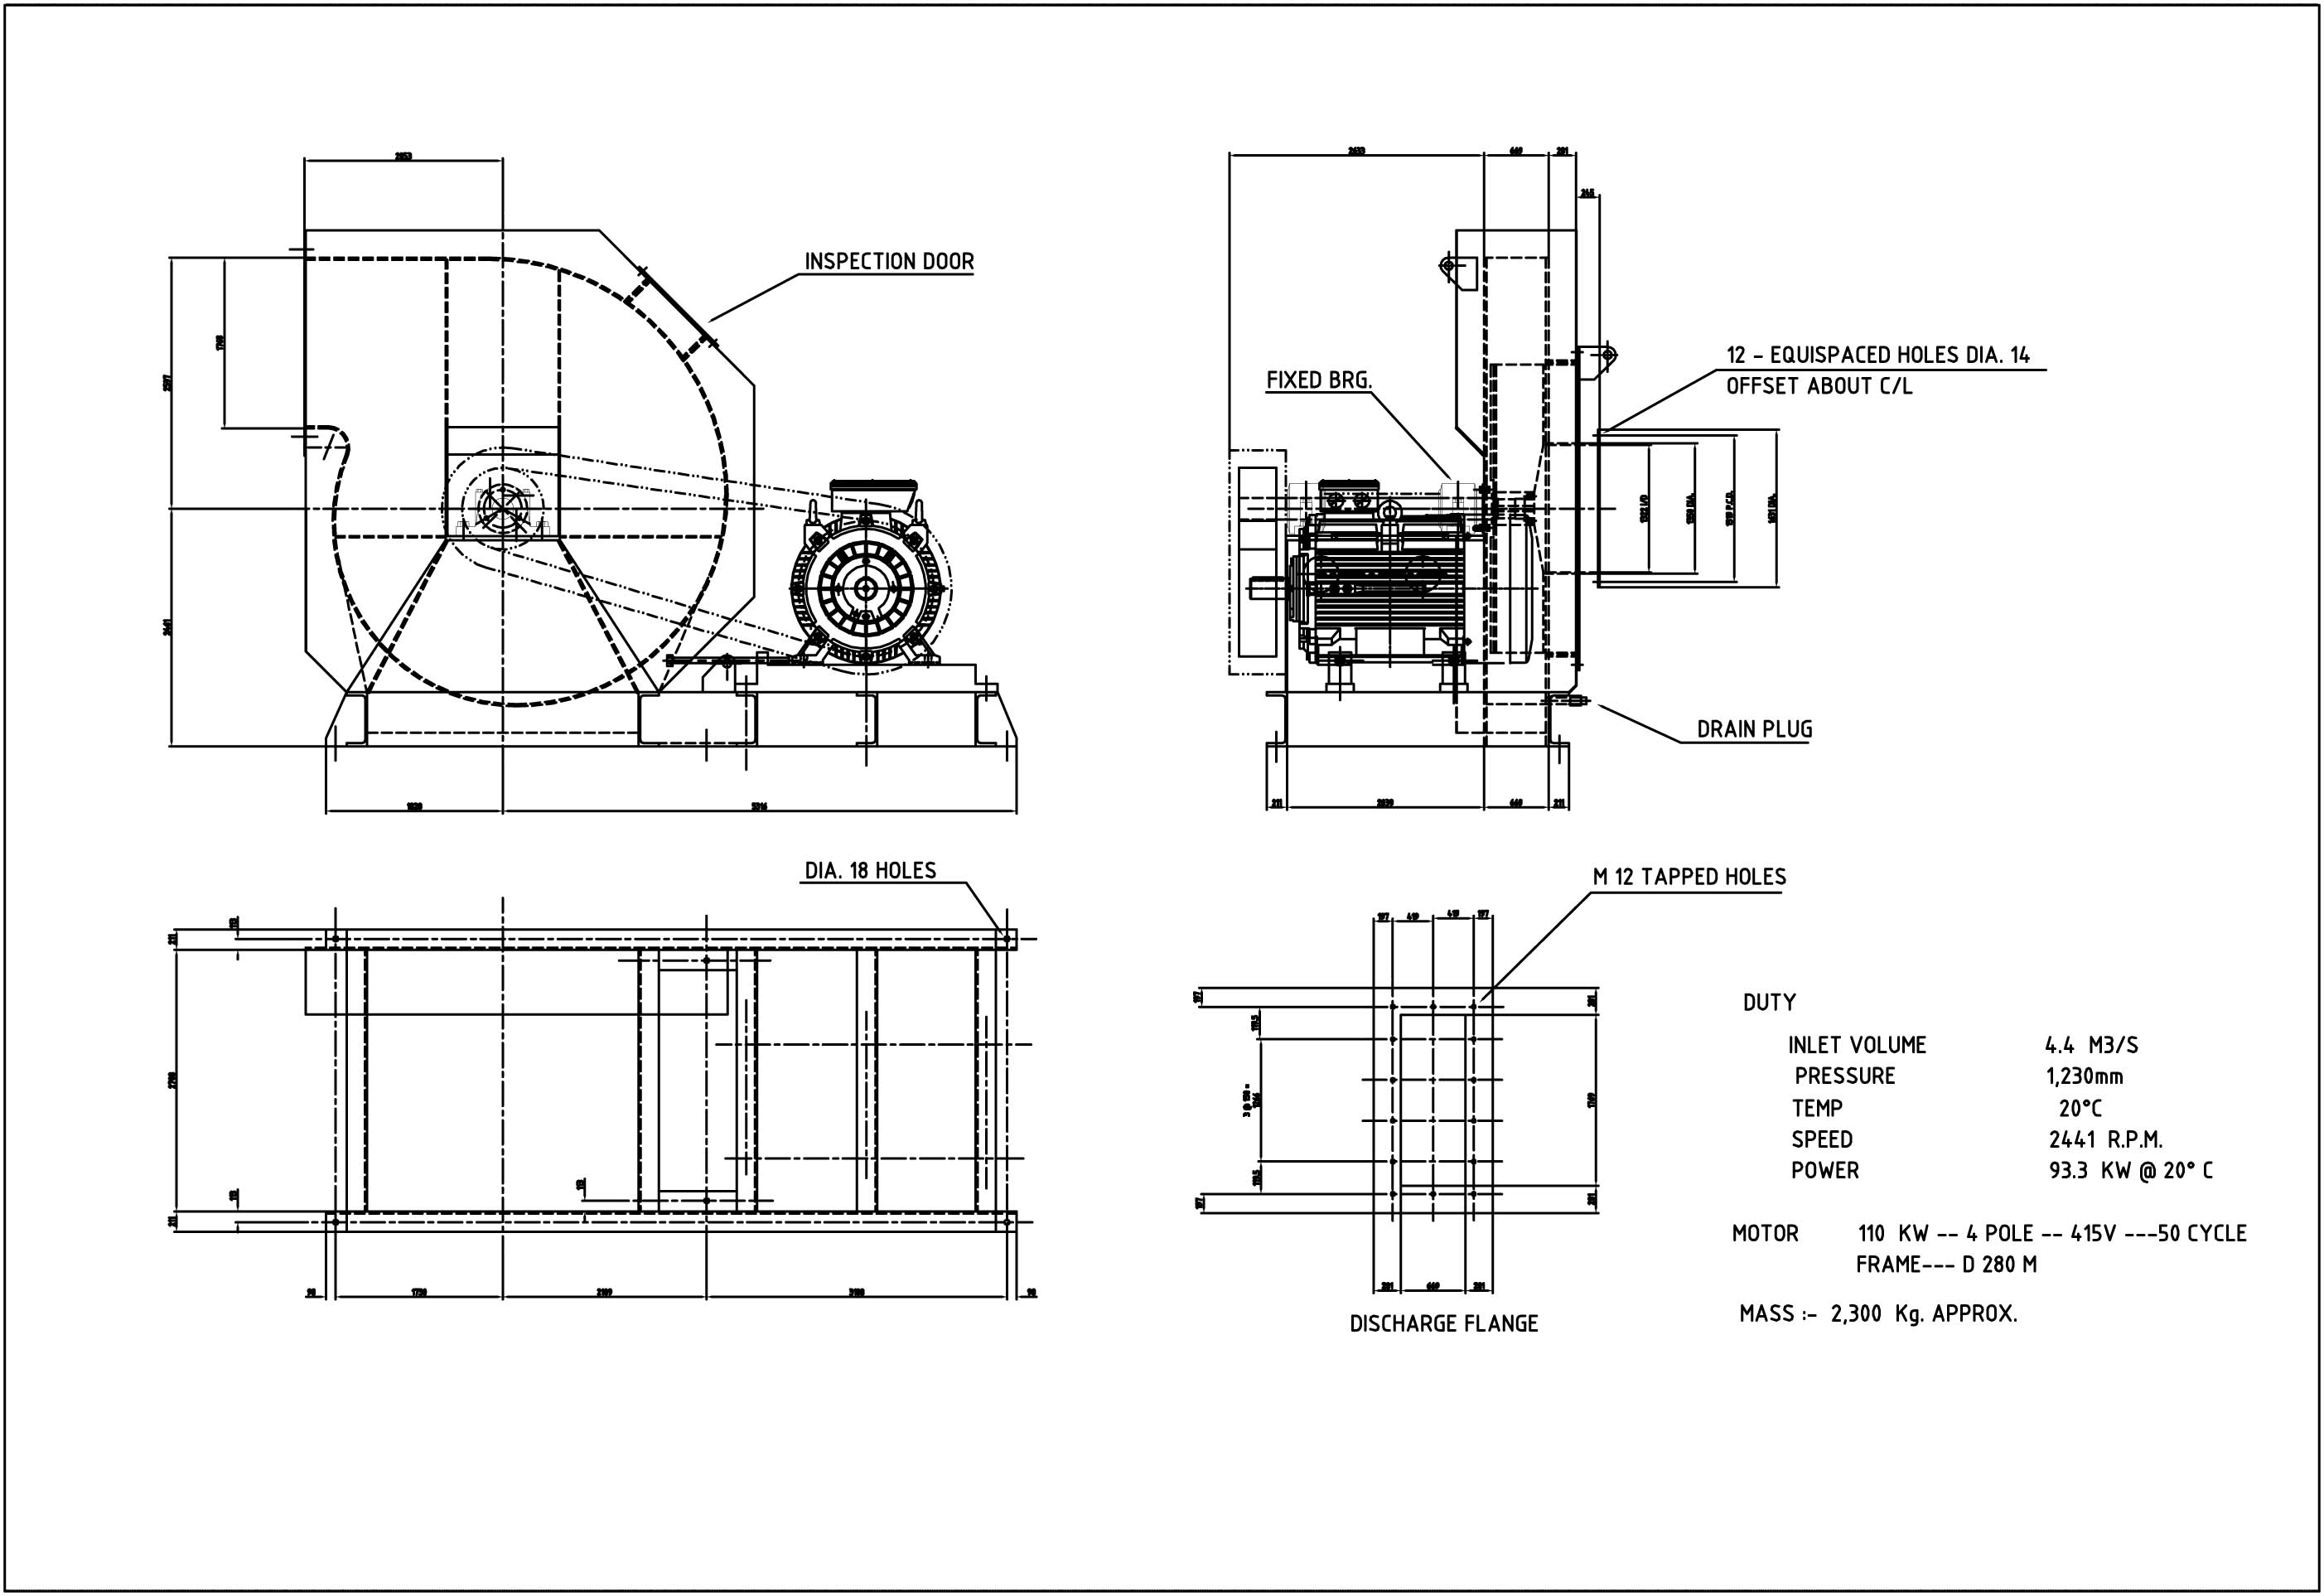 Centrifugal Fan Design : Cadprecision mechanical design and drafting portfolio